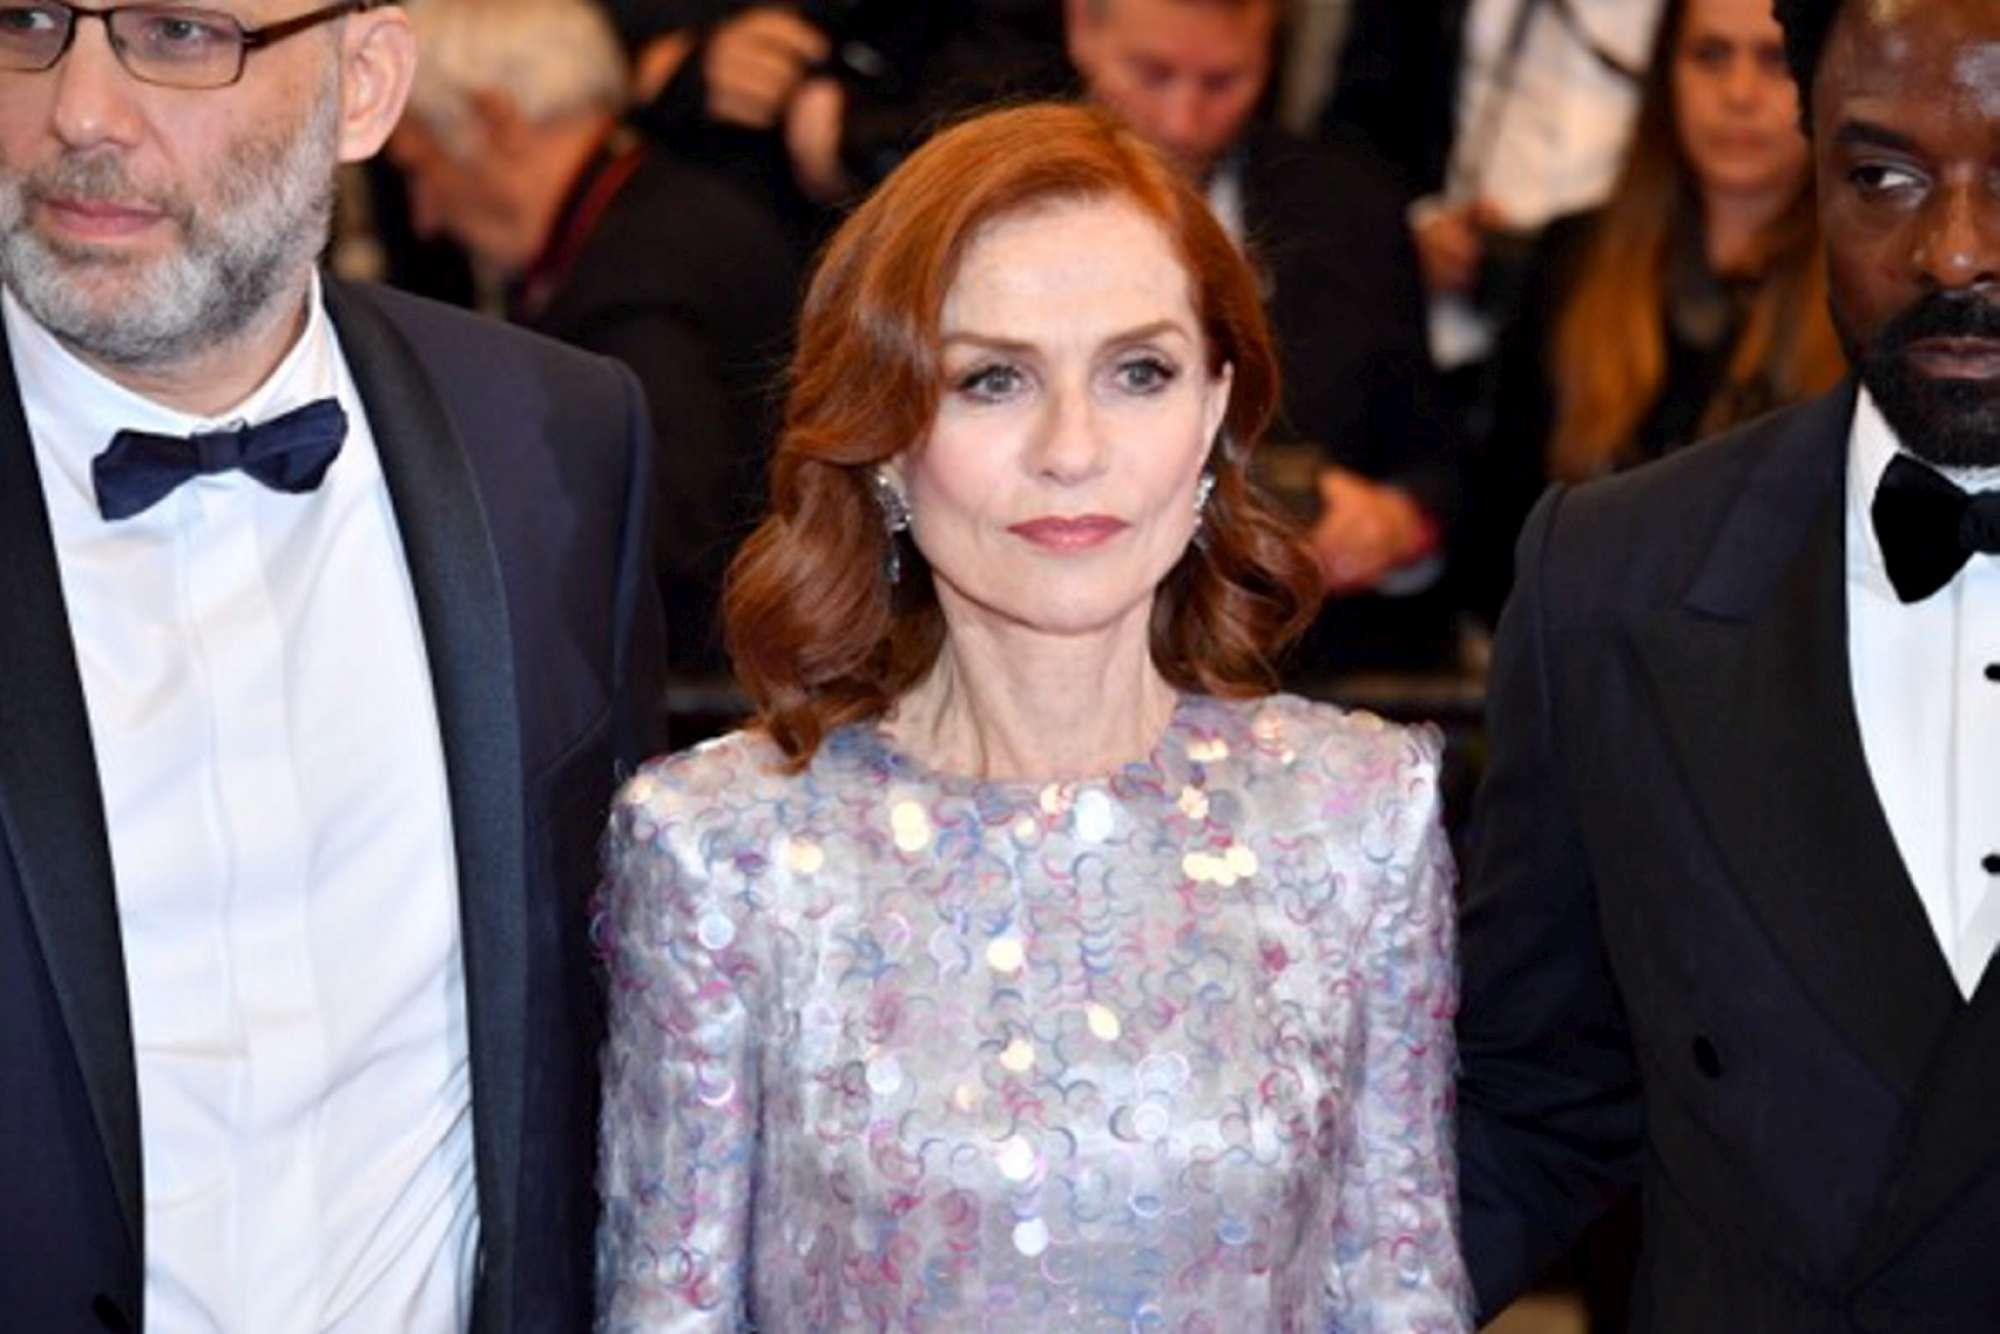 Cannes 2019, il red carpet del settimo giorno: da Isabelle Huppert a Willem Dafoe